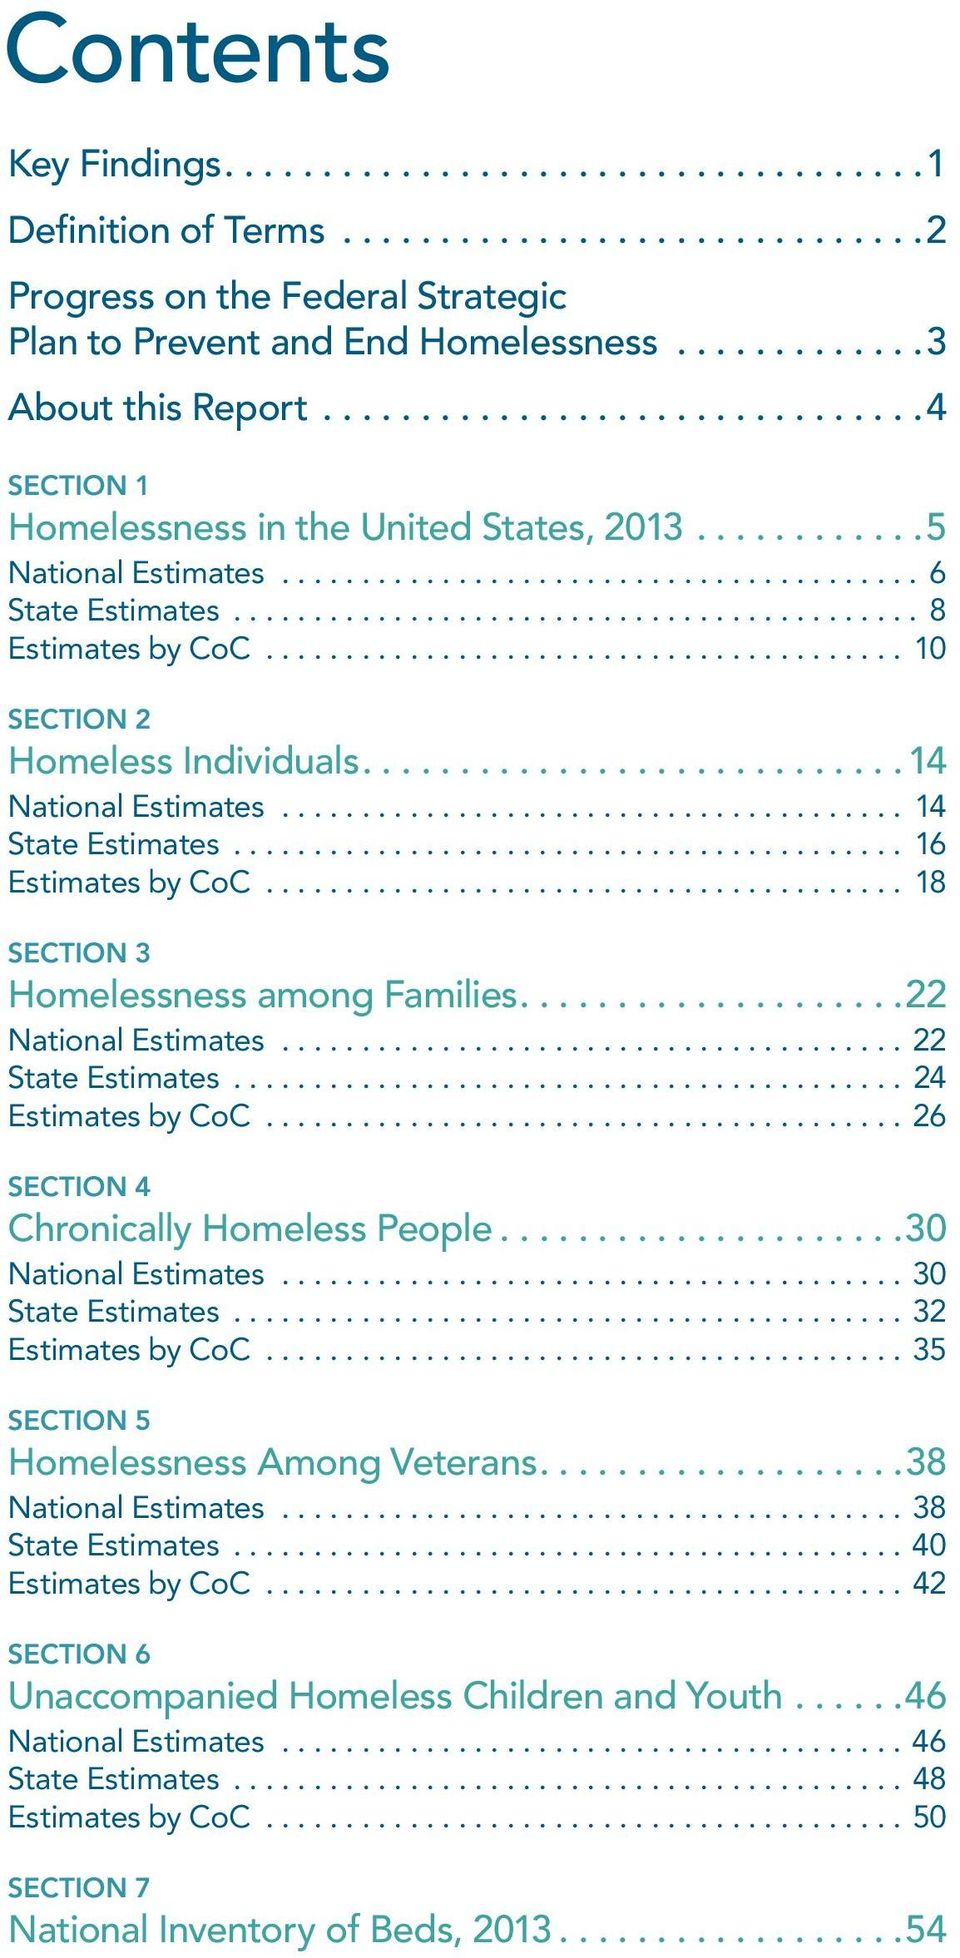 .. 18 Section 3 Homelessness among Families...22 National Estimates...22 State Estimates... 24 Estimates by CoC...26 Section 4 Chronically Homeless People...30 National Estimates...30 State Estimates.